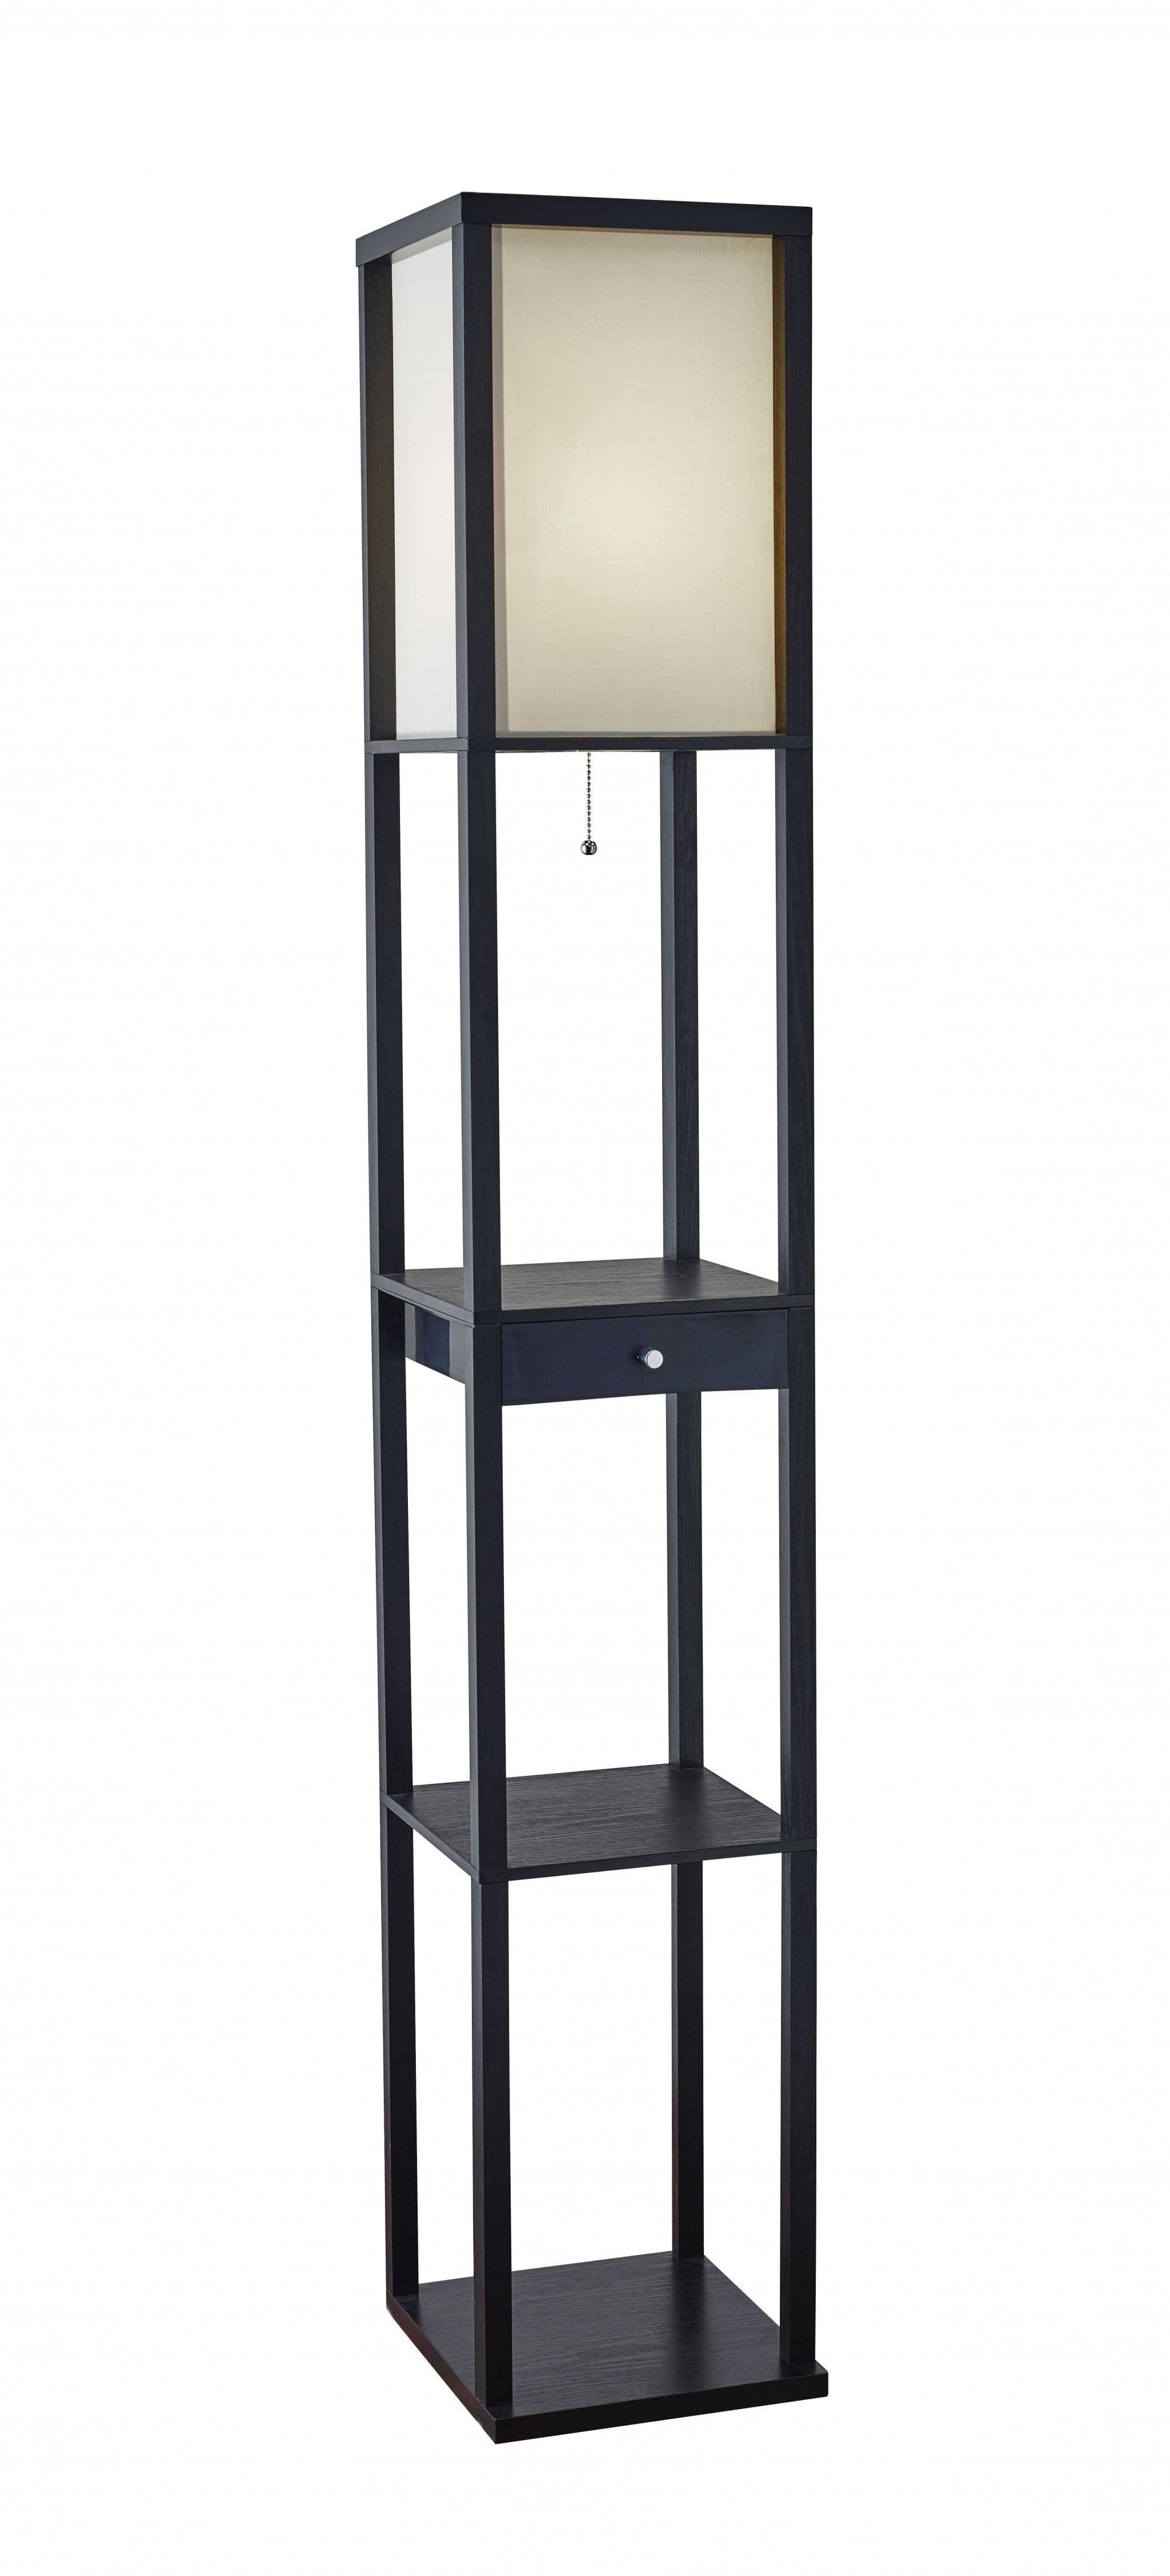 Black Wood Finish Floor Lamp with Display Shelf and Storage Drawer